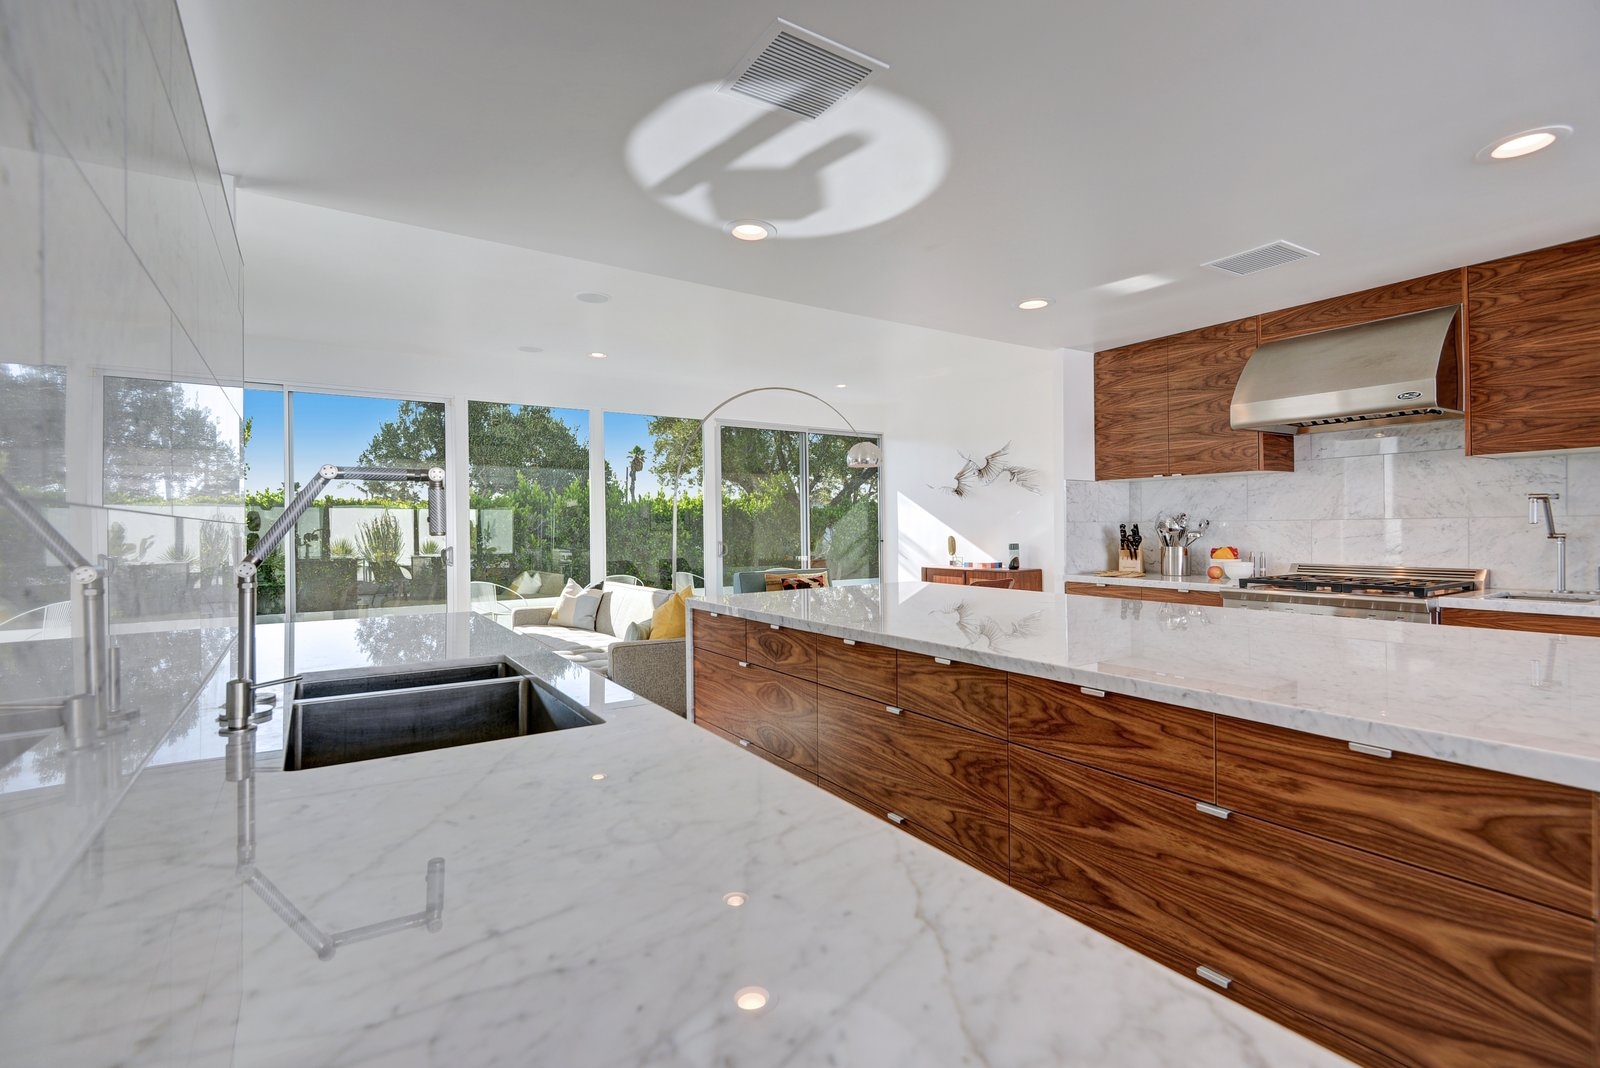 Kitchen, Wood, Refrigerator, Marble, Recessed, Drop In, and Stone Tile To keep the home as open as possible, elements like refrigerator drawers were selected in lieu of traditional appliances.  Kitchen Wood Stone Tile Refrigerator Photos from Donald Wexler Himself Helped Renovate This Palm Springs Prefab Rental